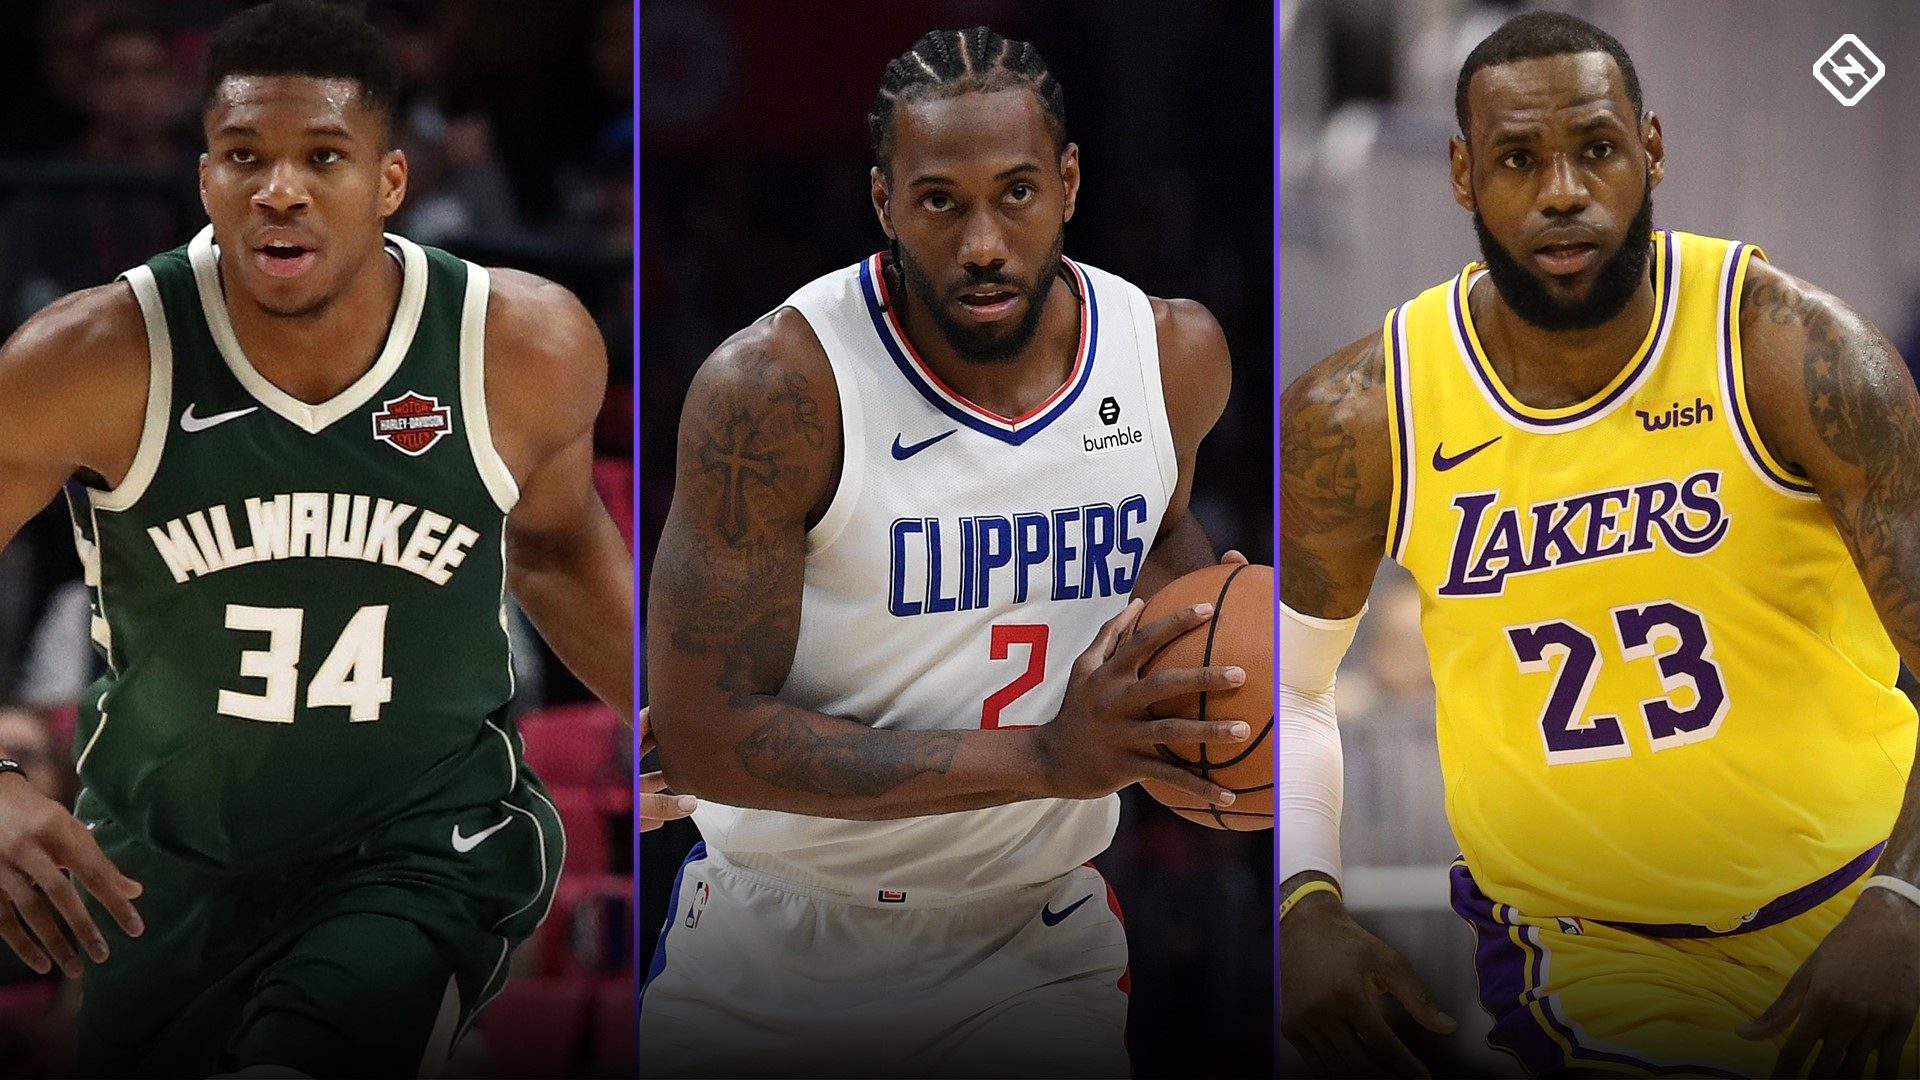 Ranking the NBA's 15 best players, from Kawhi Leonard to Kyrie Irving